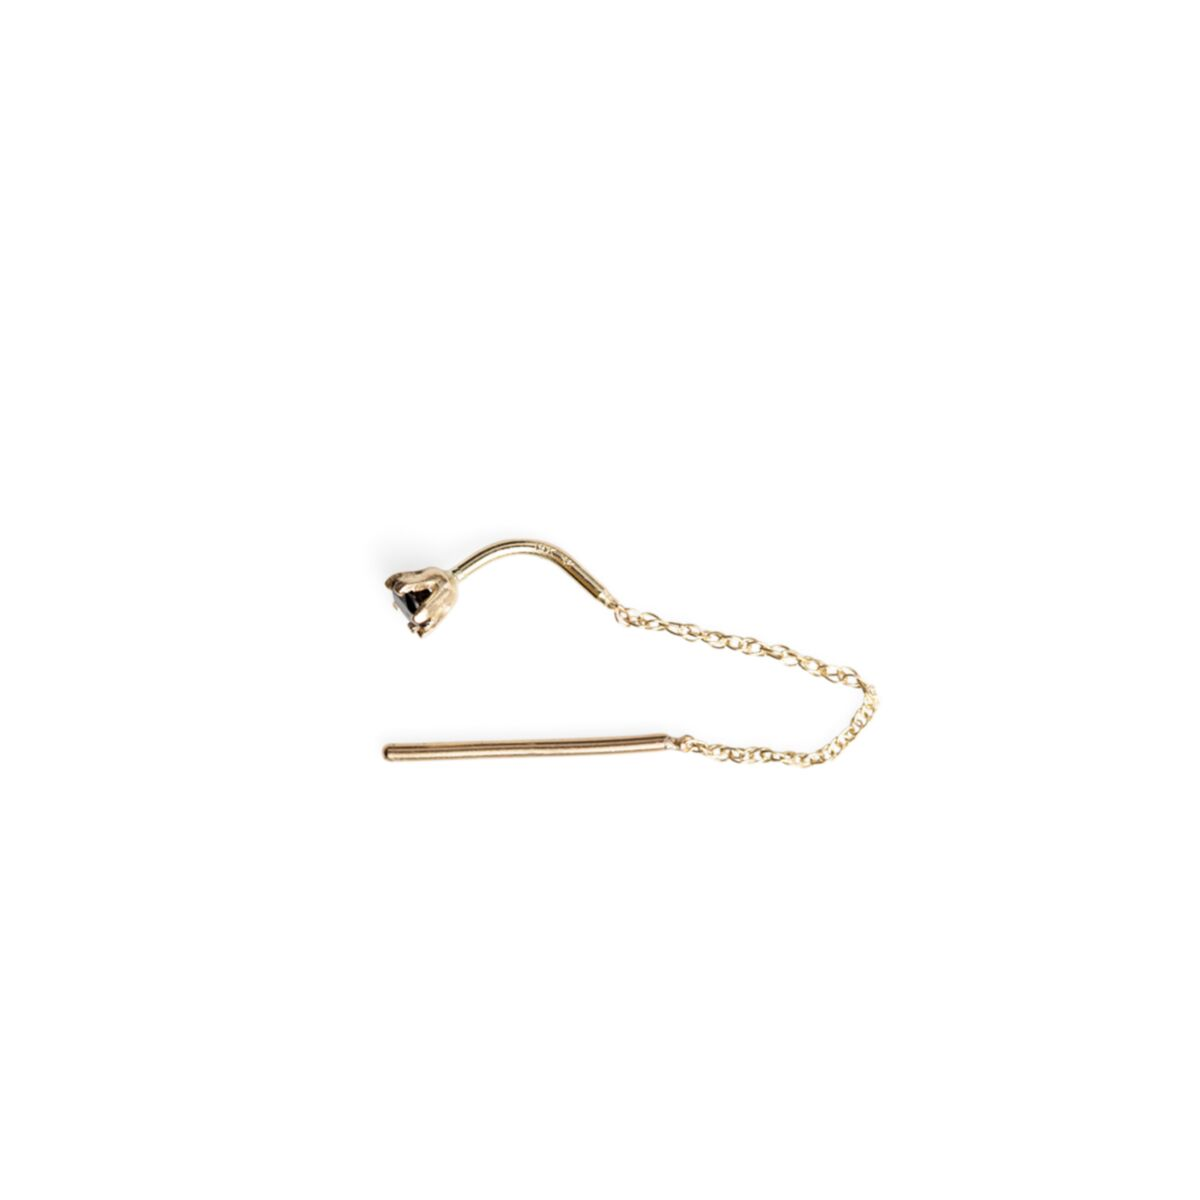 Stitch Earring, Black Diamond (SINGLE) image